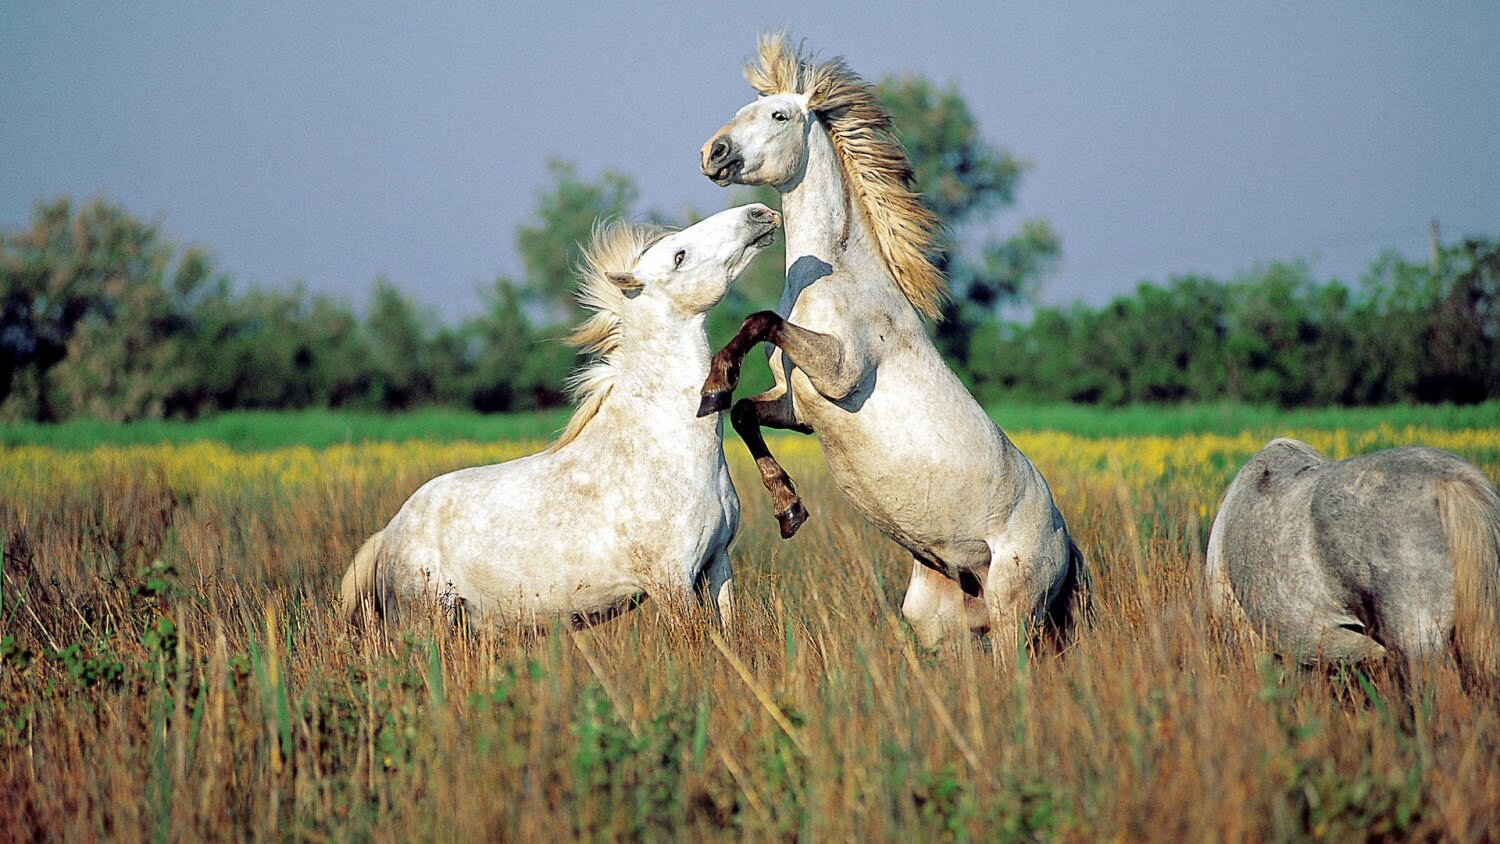 Wild Horses With 20 Perfect Photos | MostBeautifulThings - photo#50